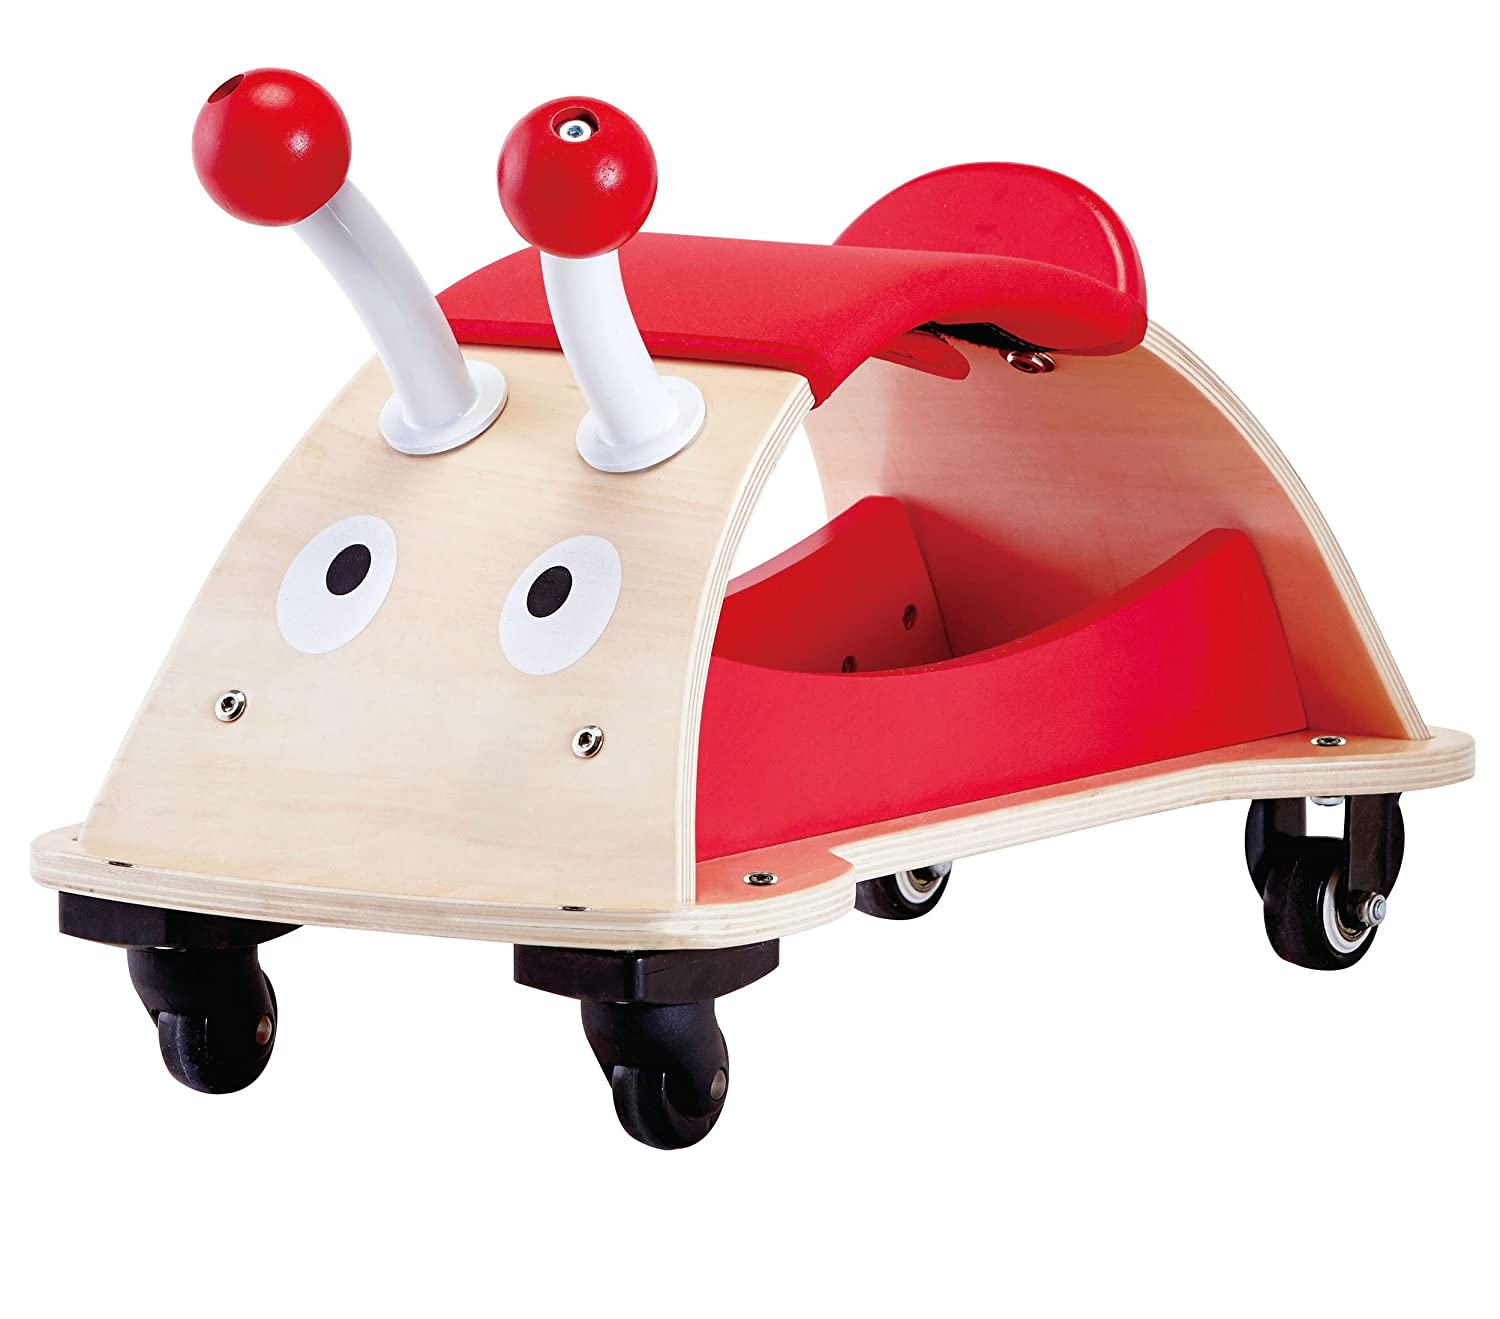 Award Winning Hape Bug About Kid's Push and Pull Ride On Scooter